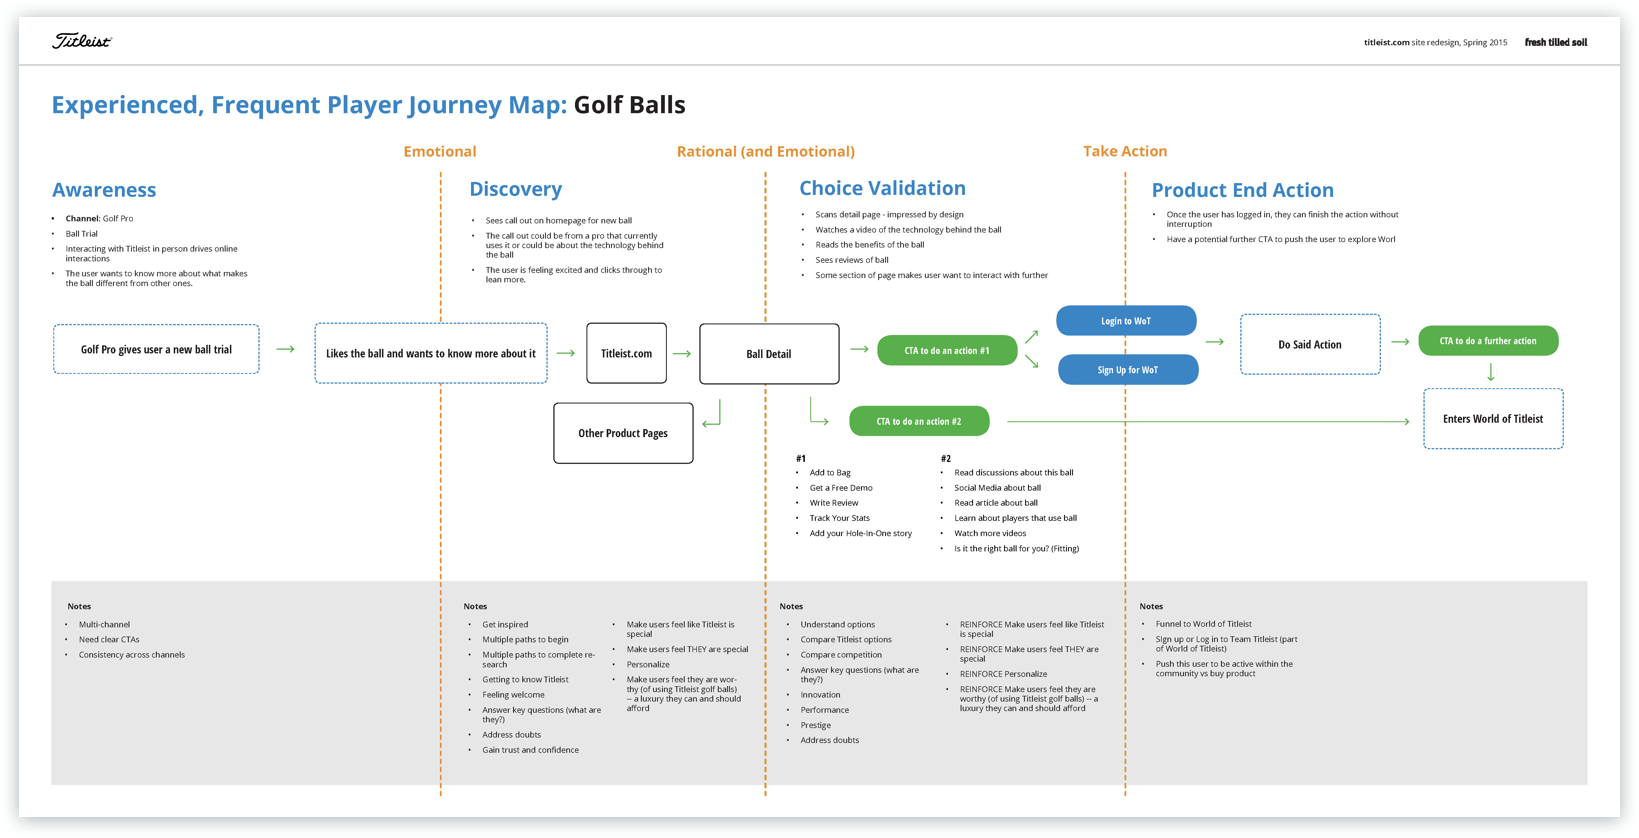 a journey map created by Fresh Tilled Soil for Titleist describing a customer's journey of purchasing golf balls